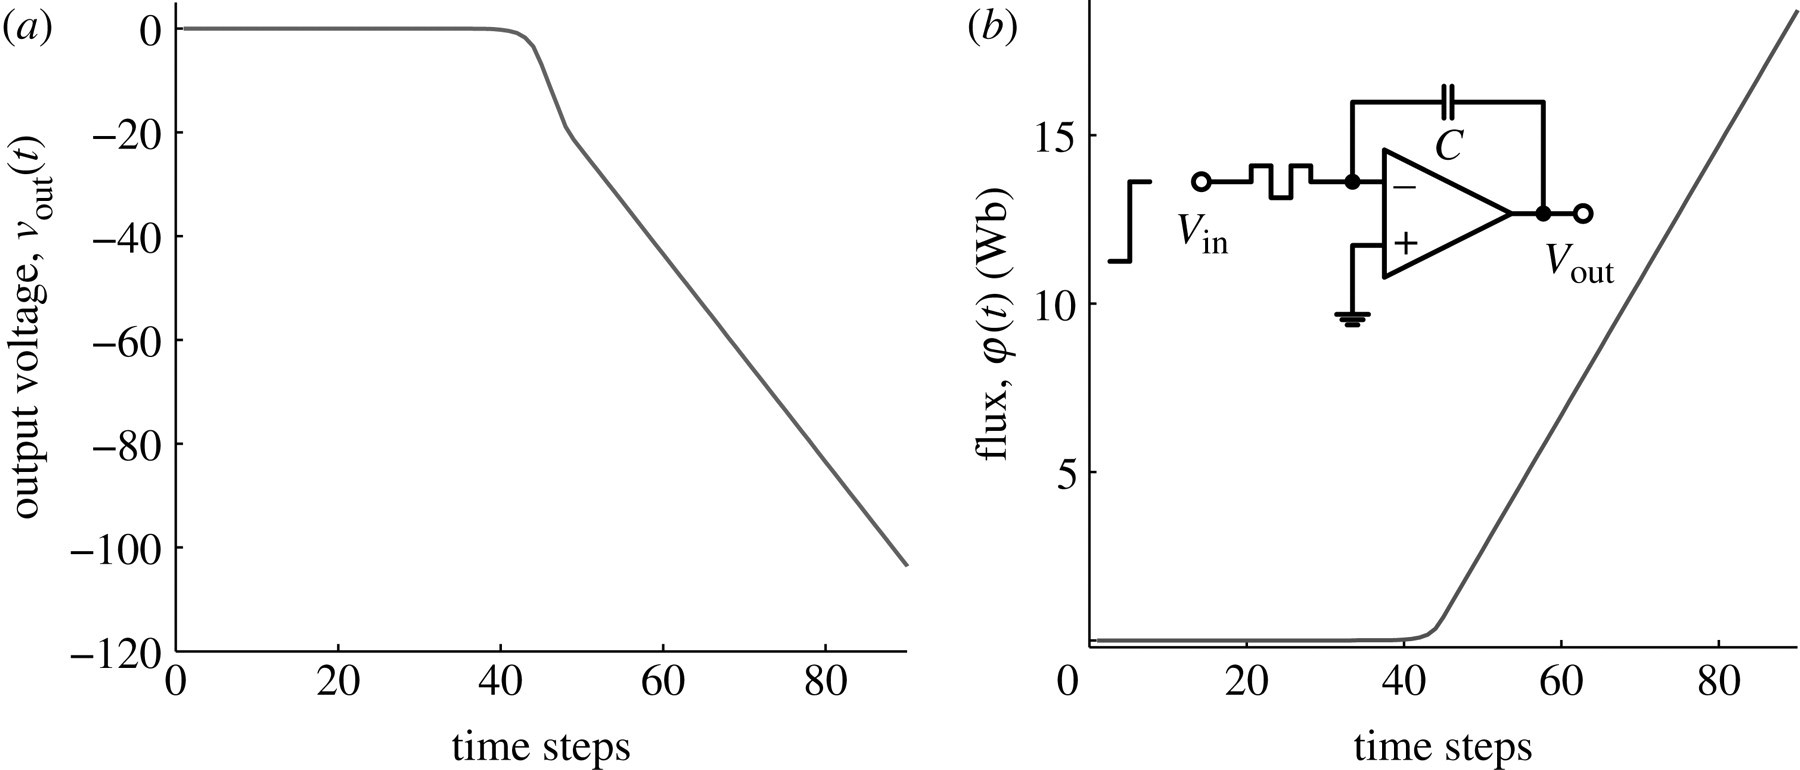 The Fourth Element Characteristics Modelling And Electromagnetic Integrator Lifier Circuit Likewise Low Drift Download Figure